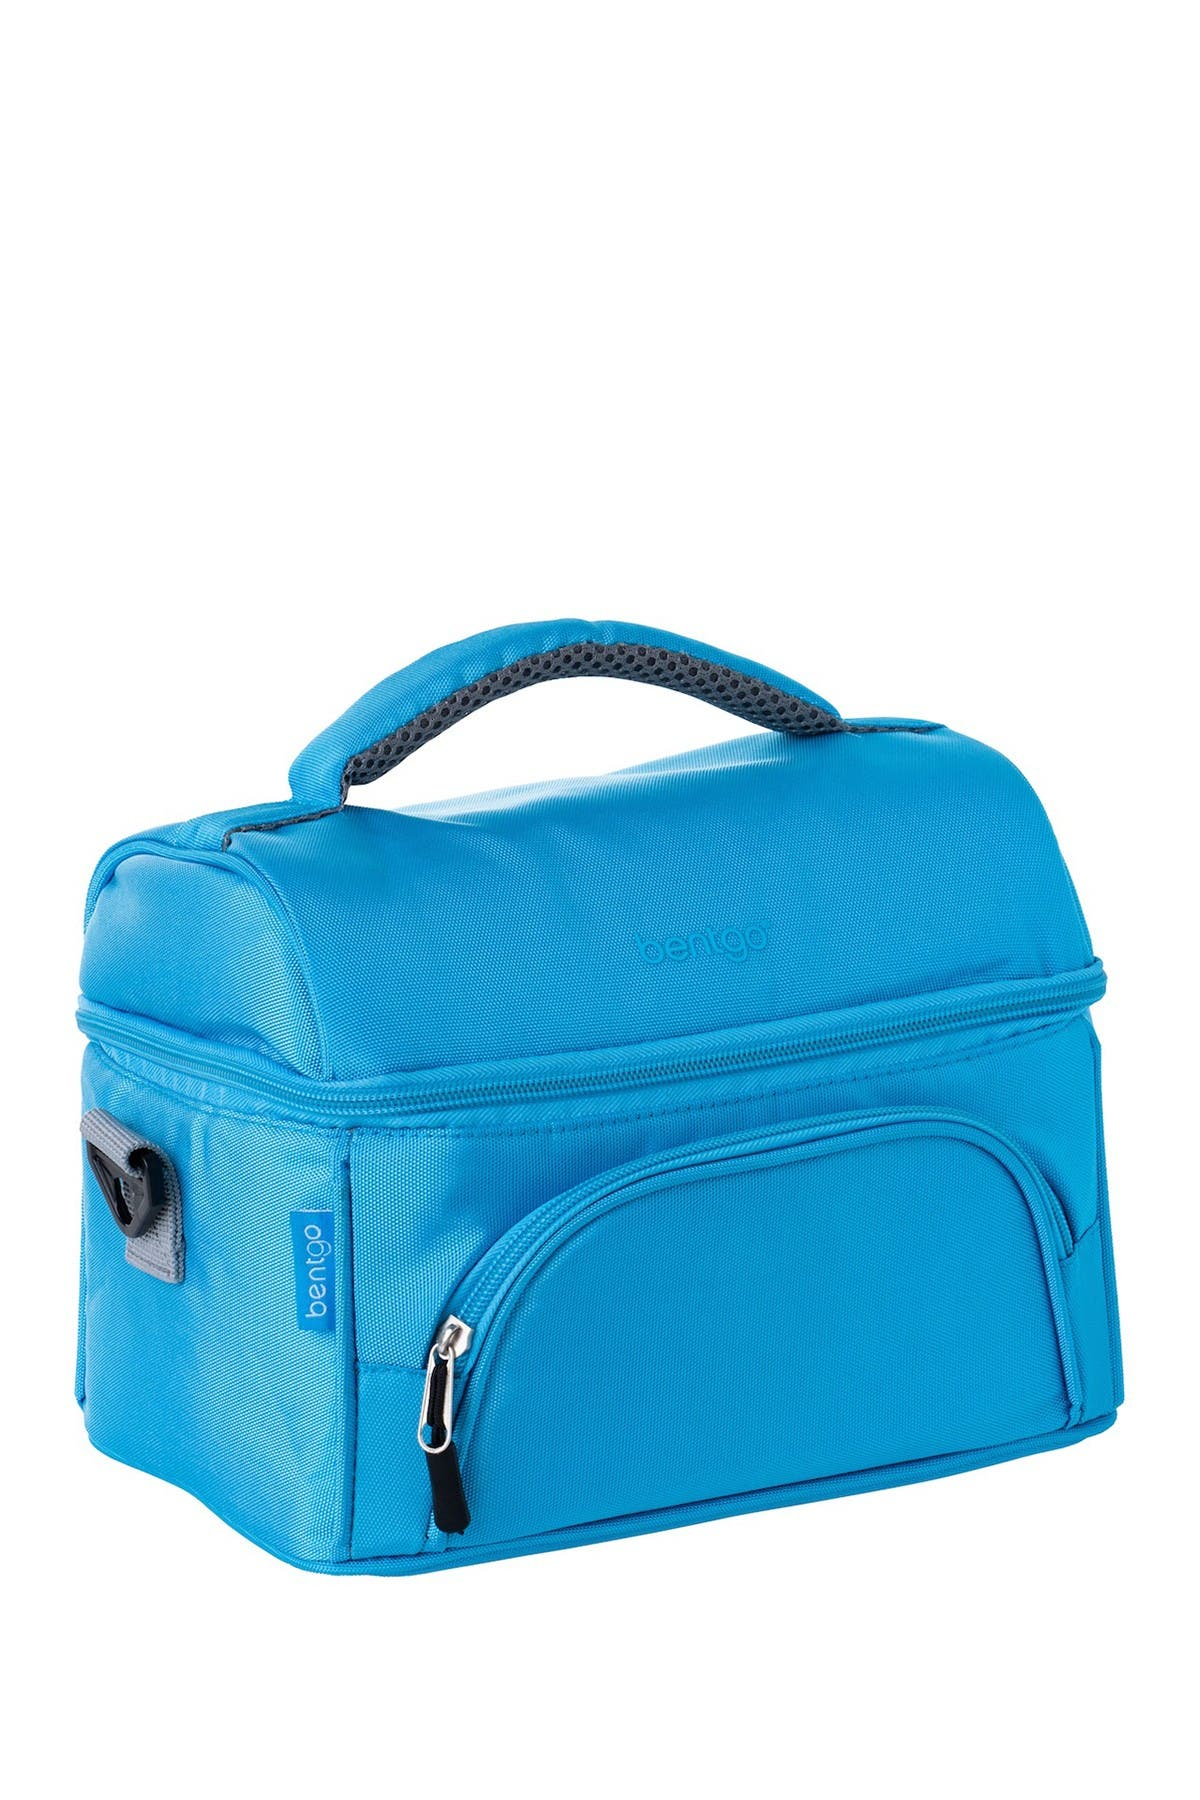 Image of BENTGO Deluxe Lunch Bag - Blue